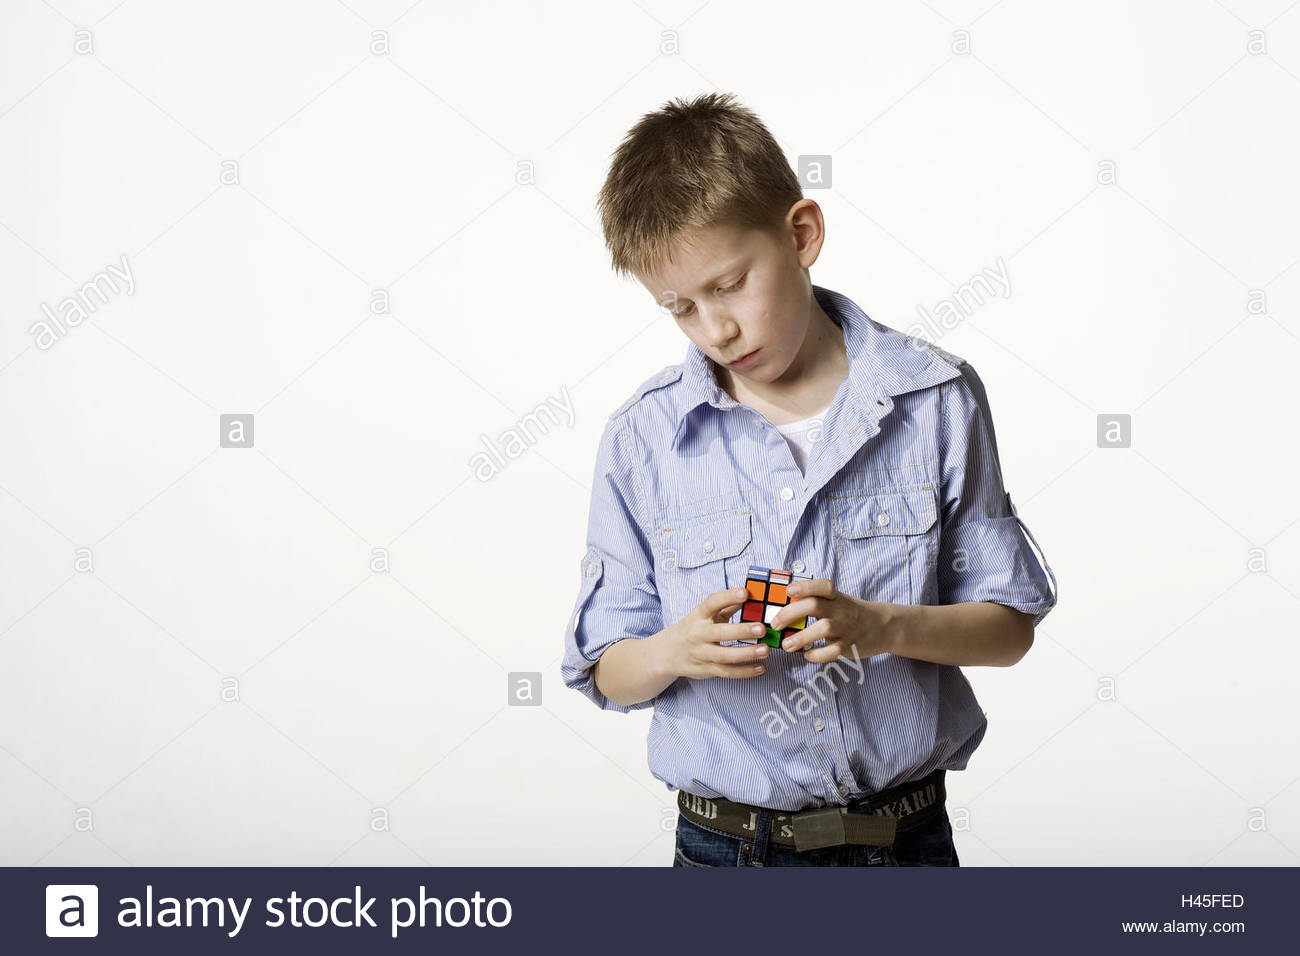 Boy, stand, magic cubes, rotate, play, half portrait, model released, no property release, studio, cut out, person, - Stock Image